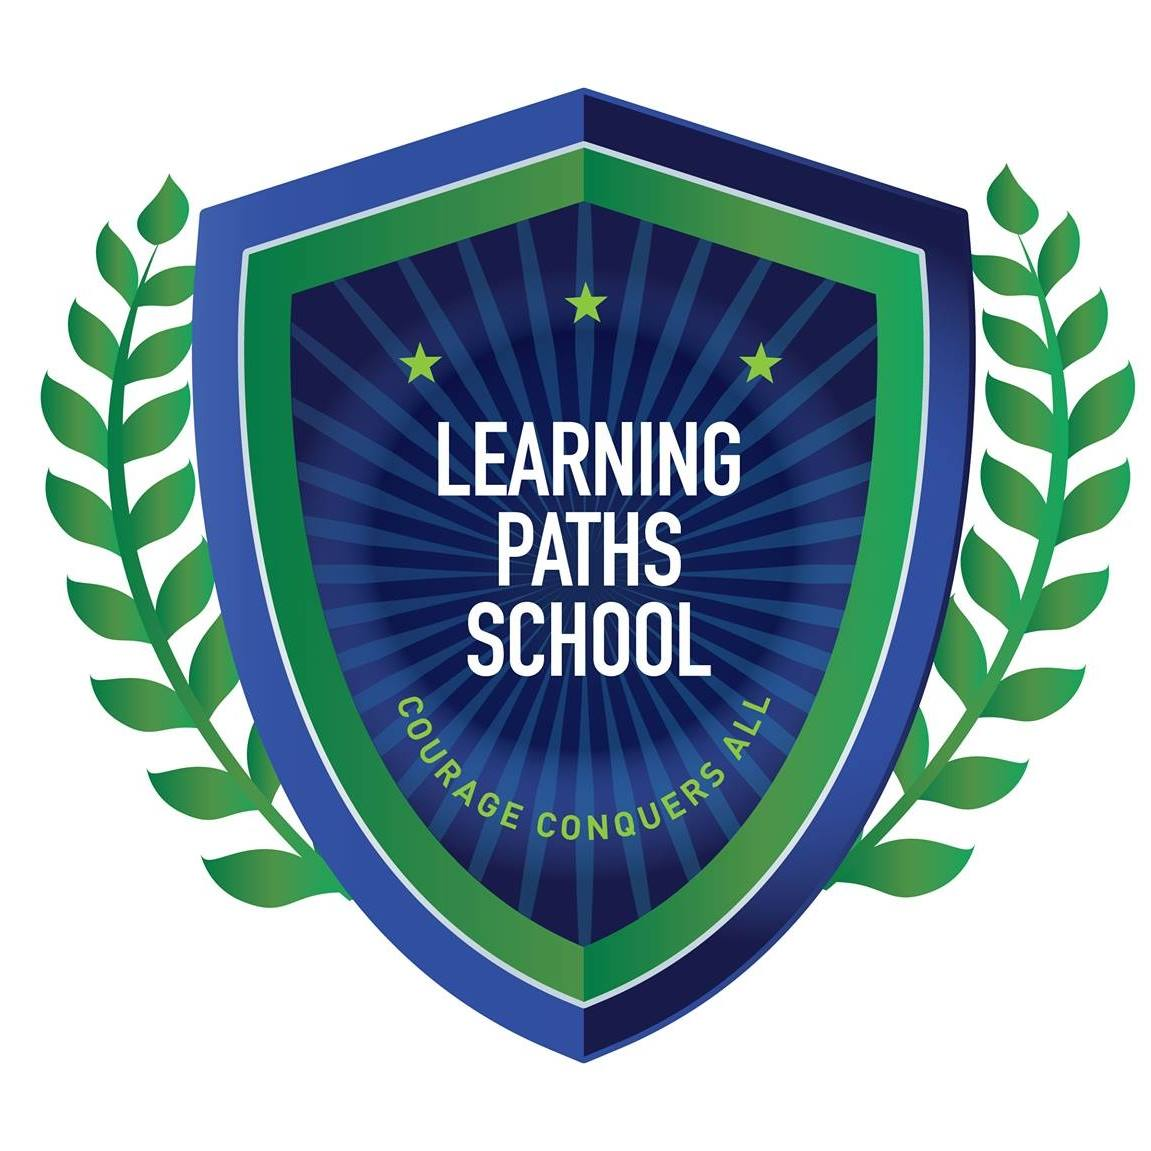 Learning Paths School - Mohali Image